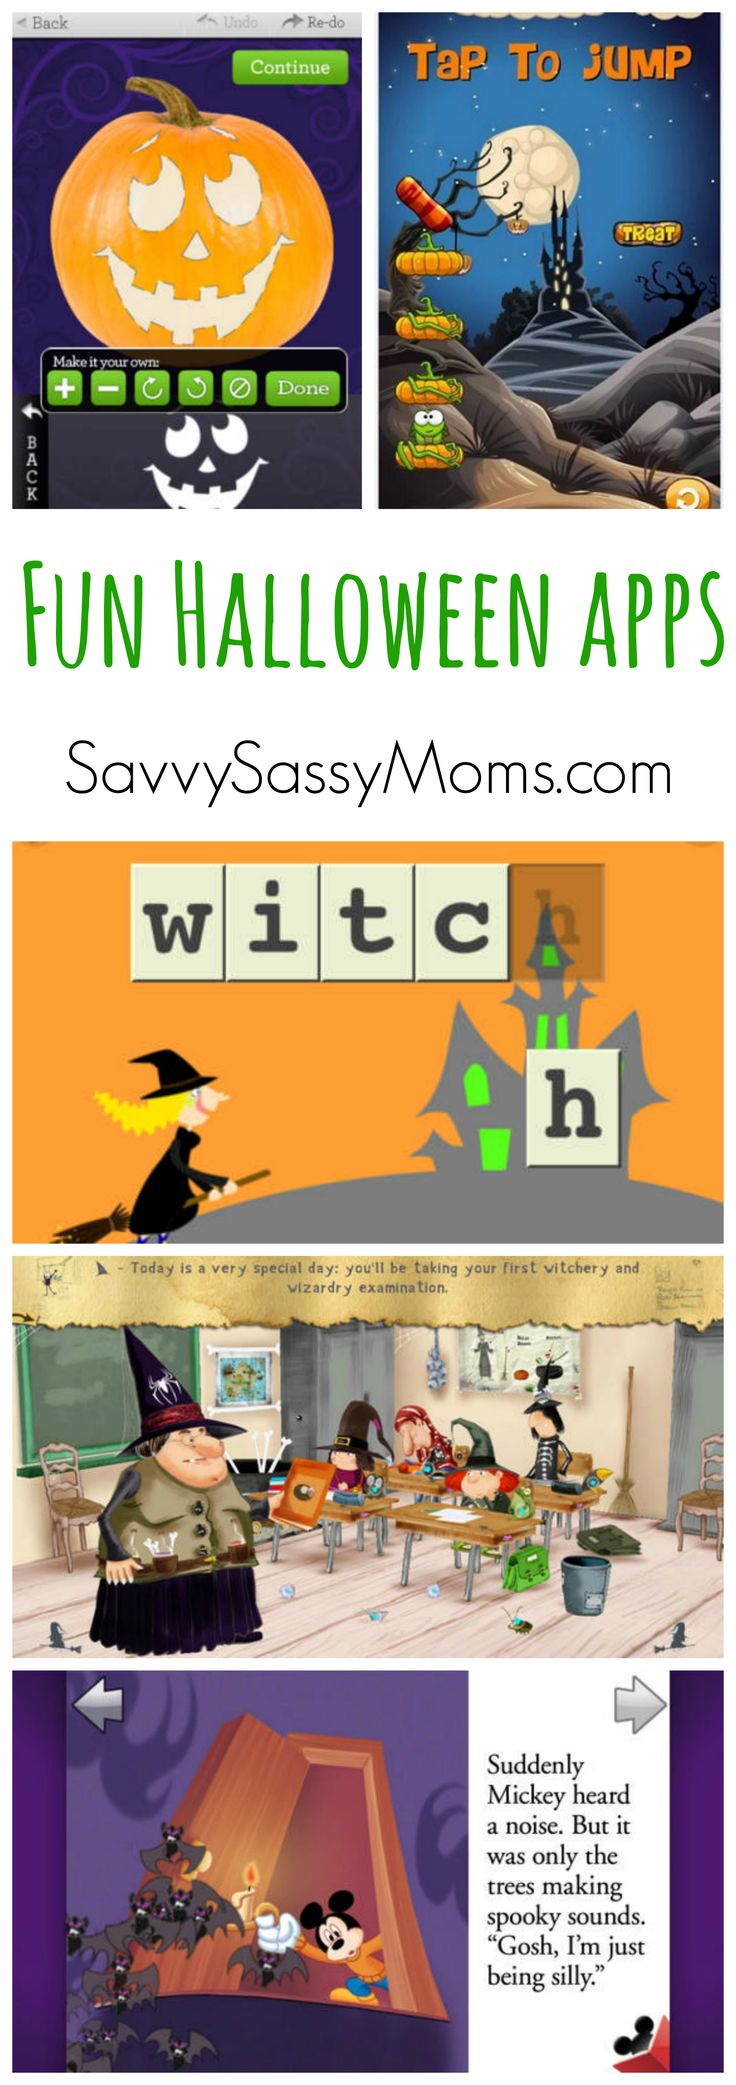 Great Halloween apps for kids